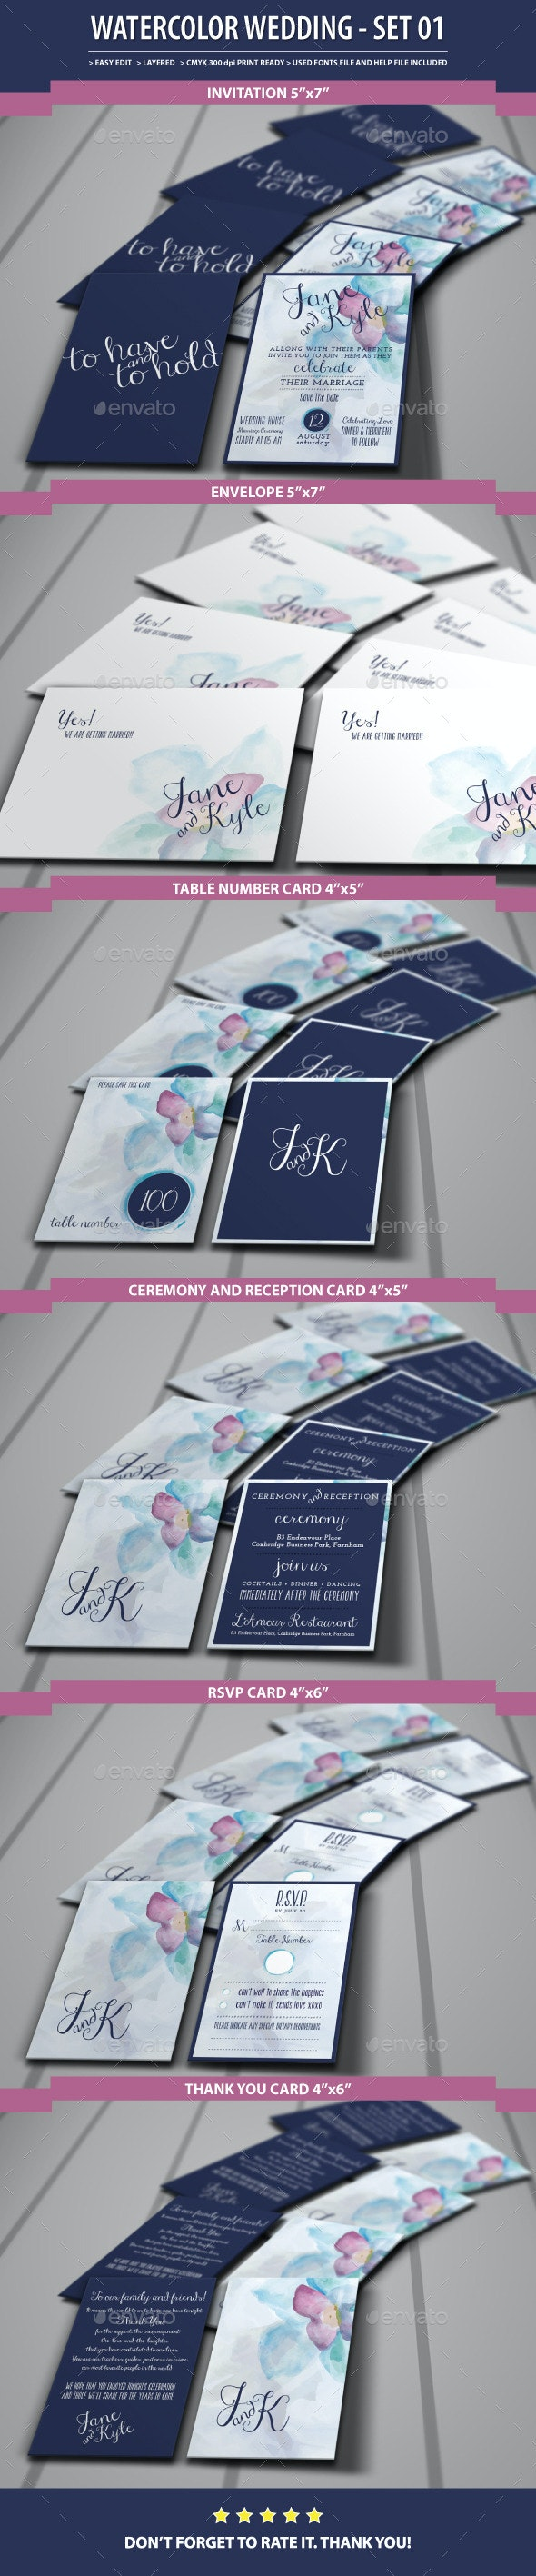 Watercolor Wedding  - Set01 - Weddings Cards & Invites